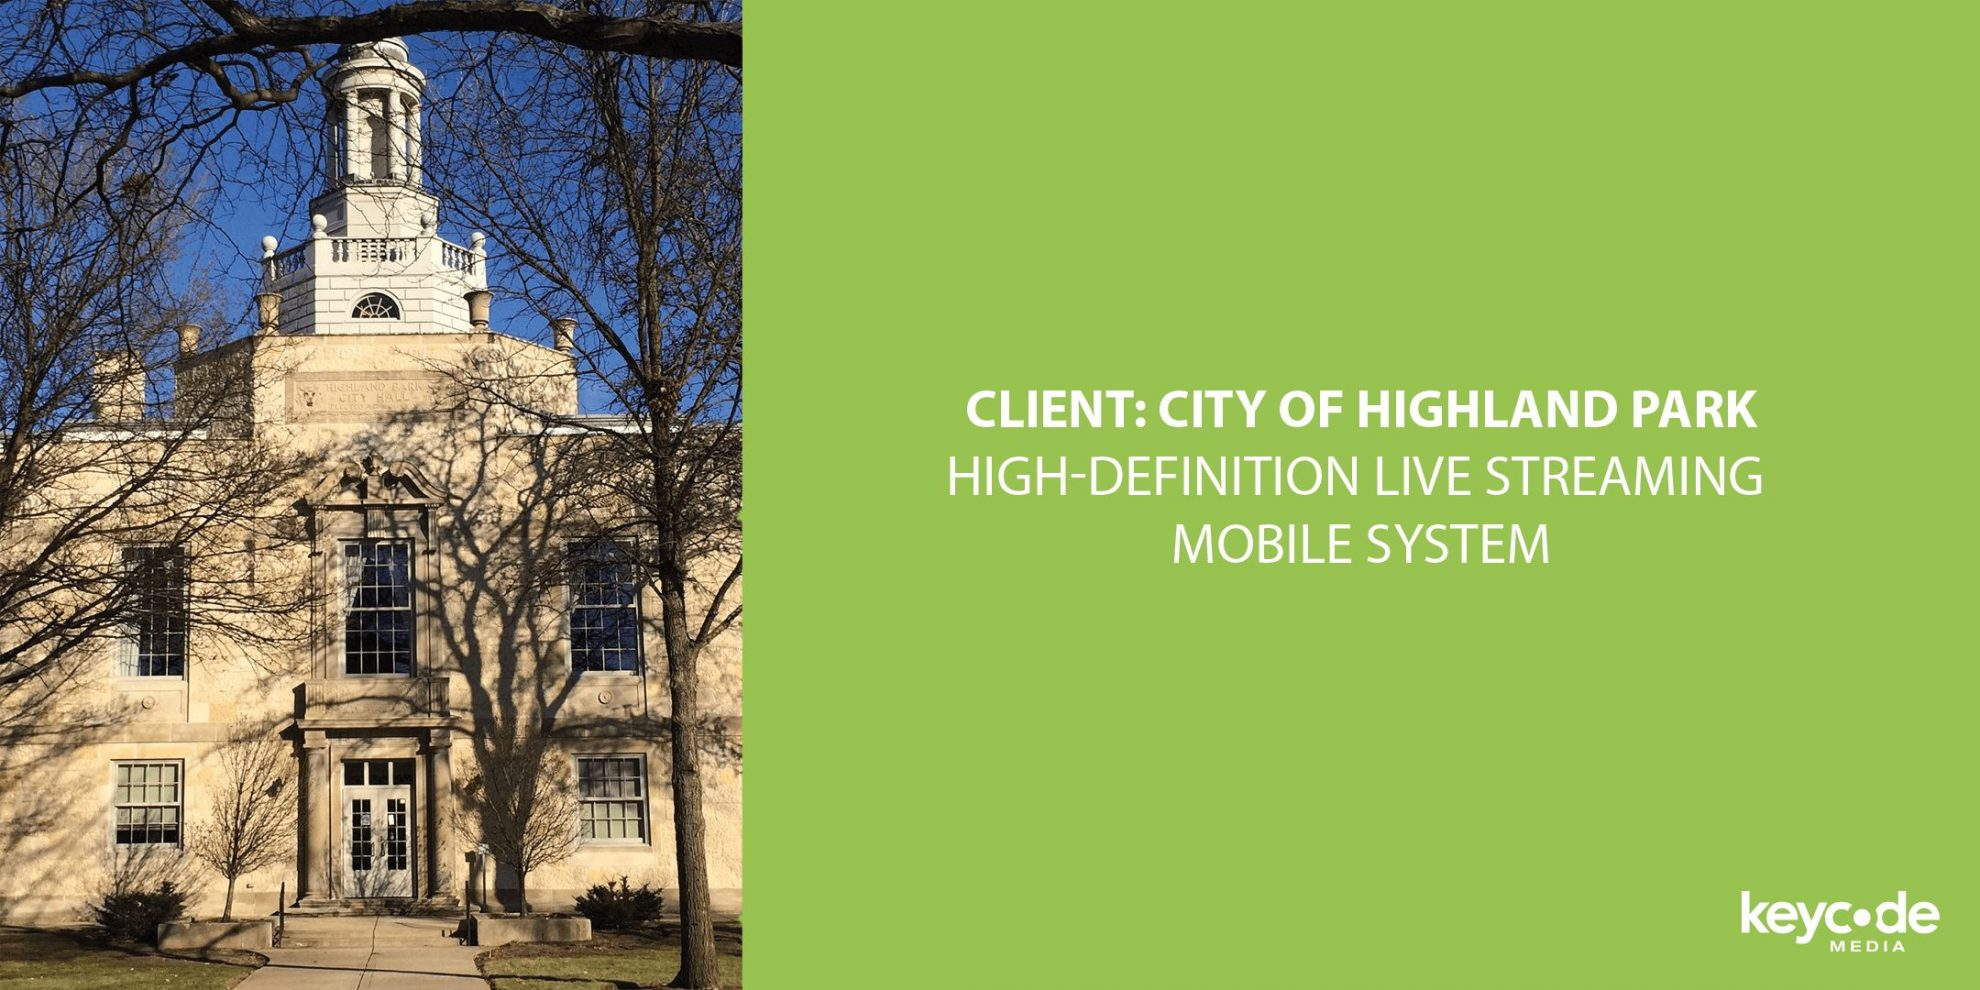 City-of-Highland-Park-High-Definition-Live-Streaming-Mobile-System